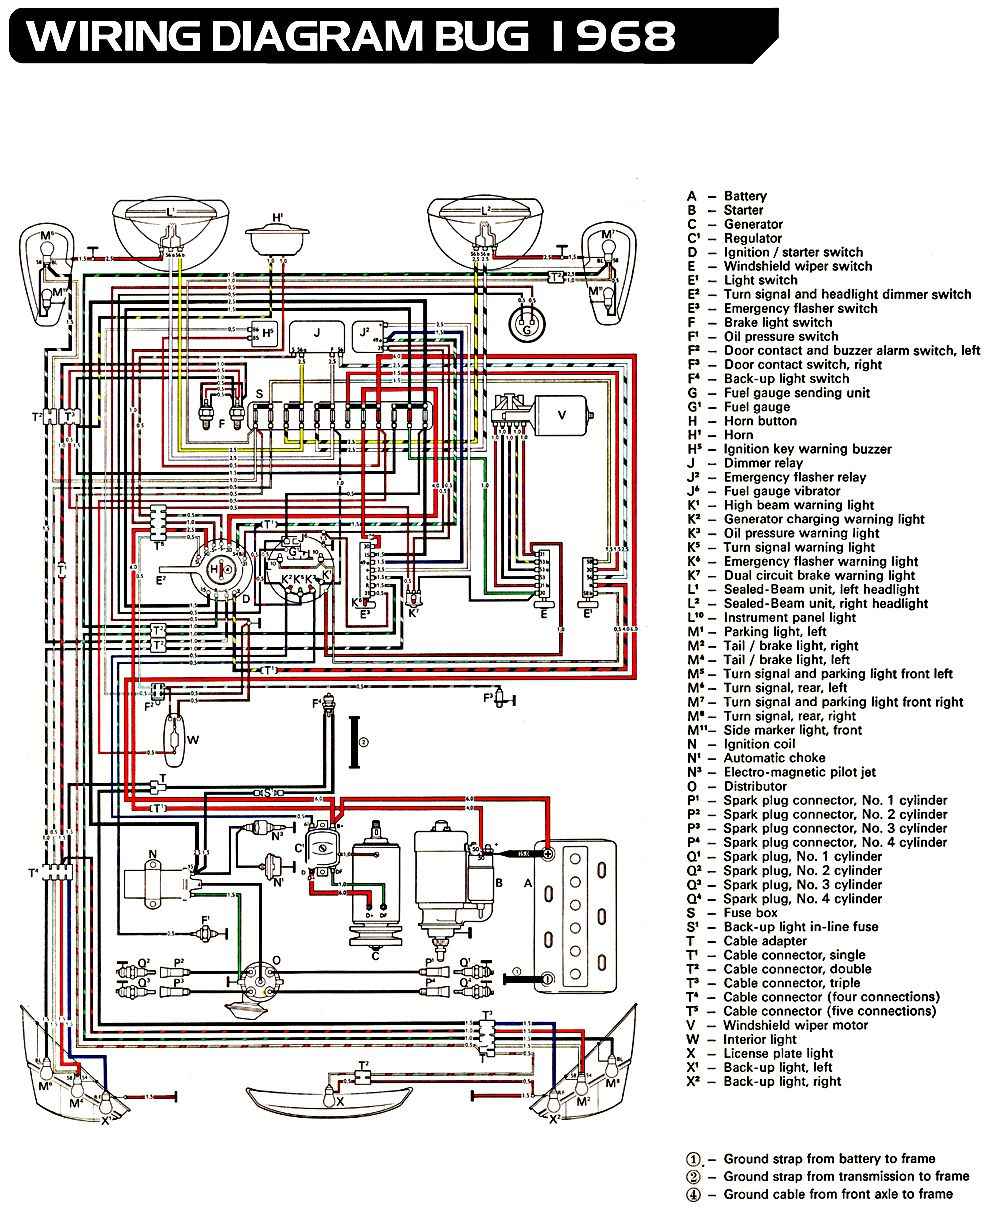 1974 vw ignition wiring diagram 69 vw ignition wiring diagram